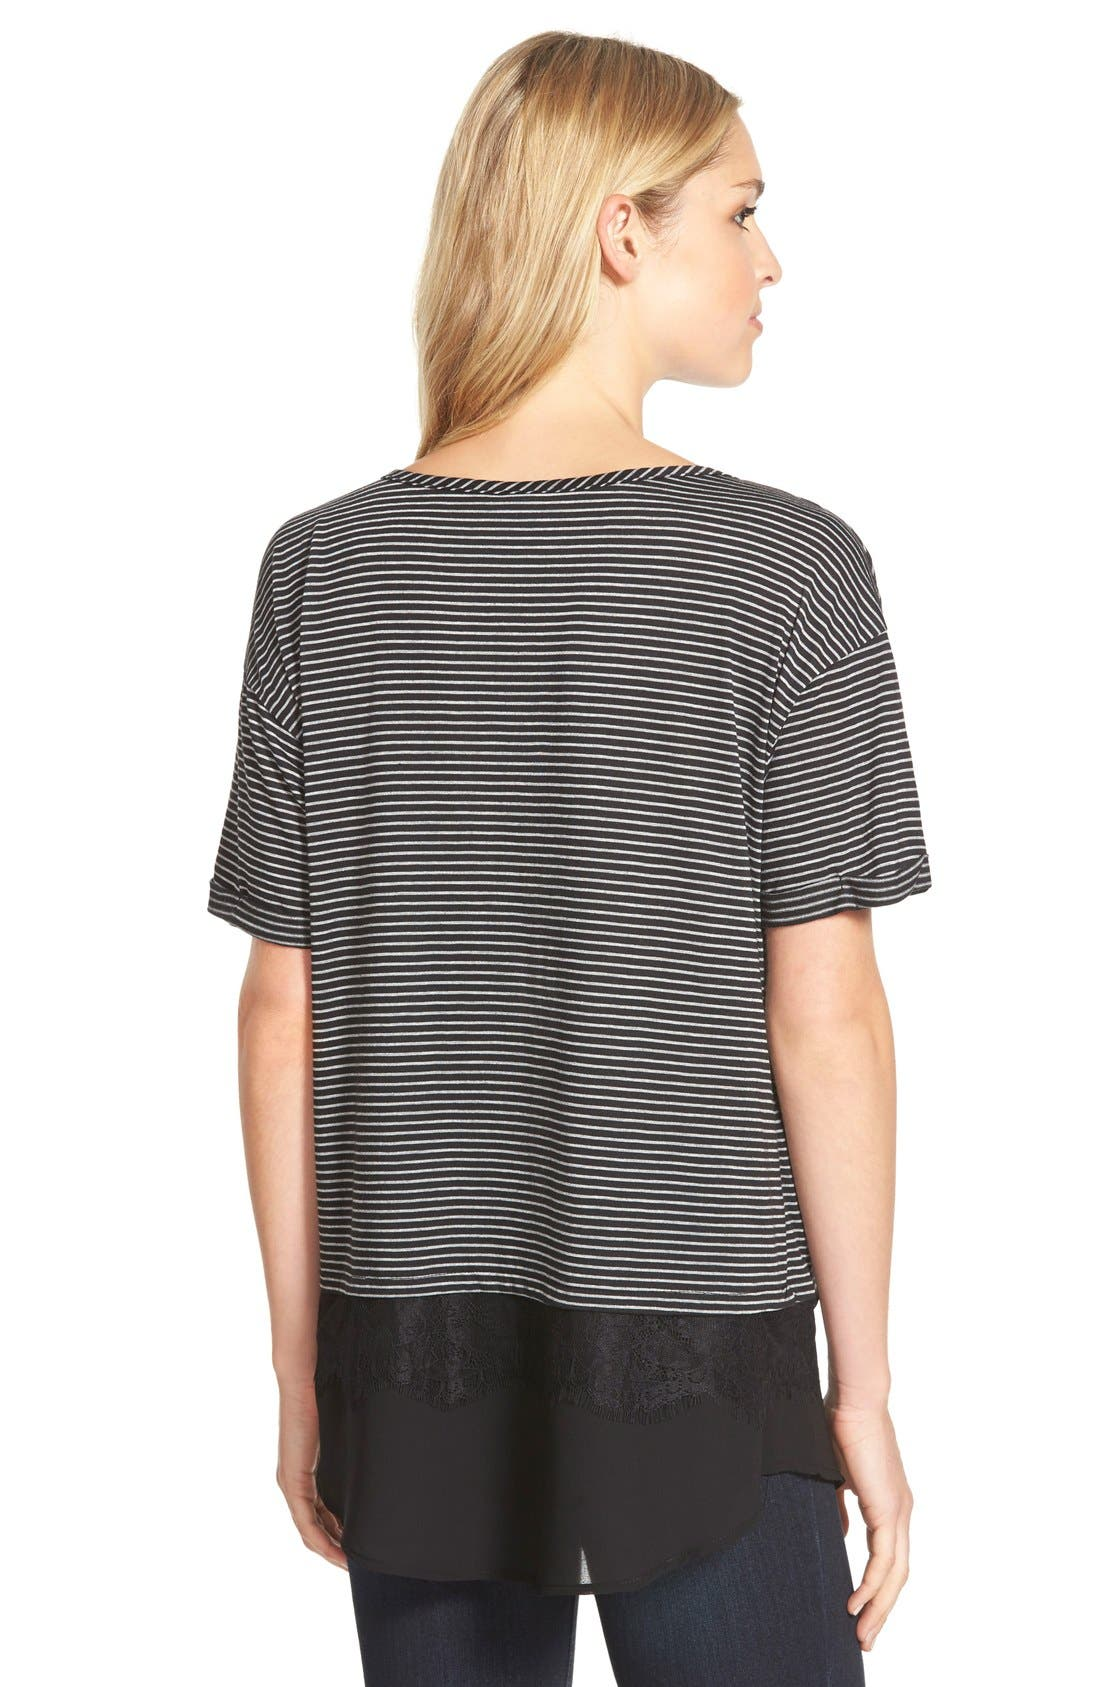 Lace Trim Layered Look Tee,                             Alternate thumbnail 2, color,                             002